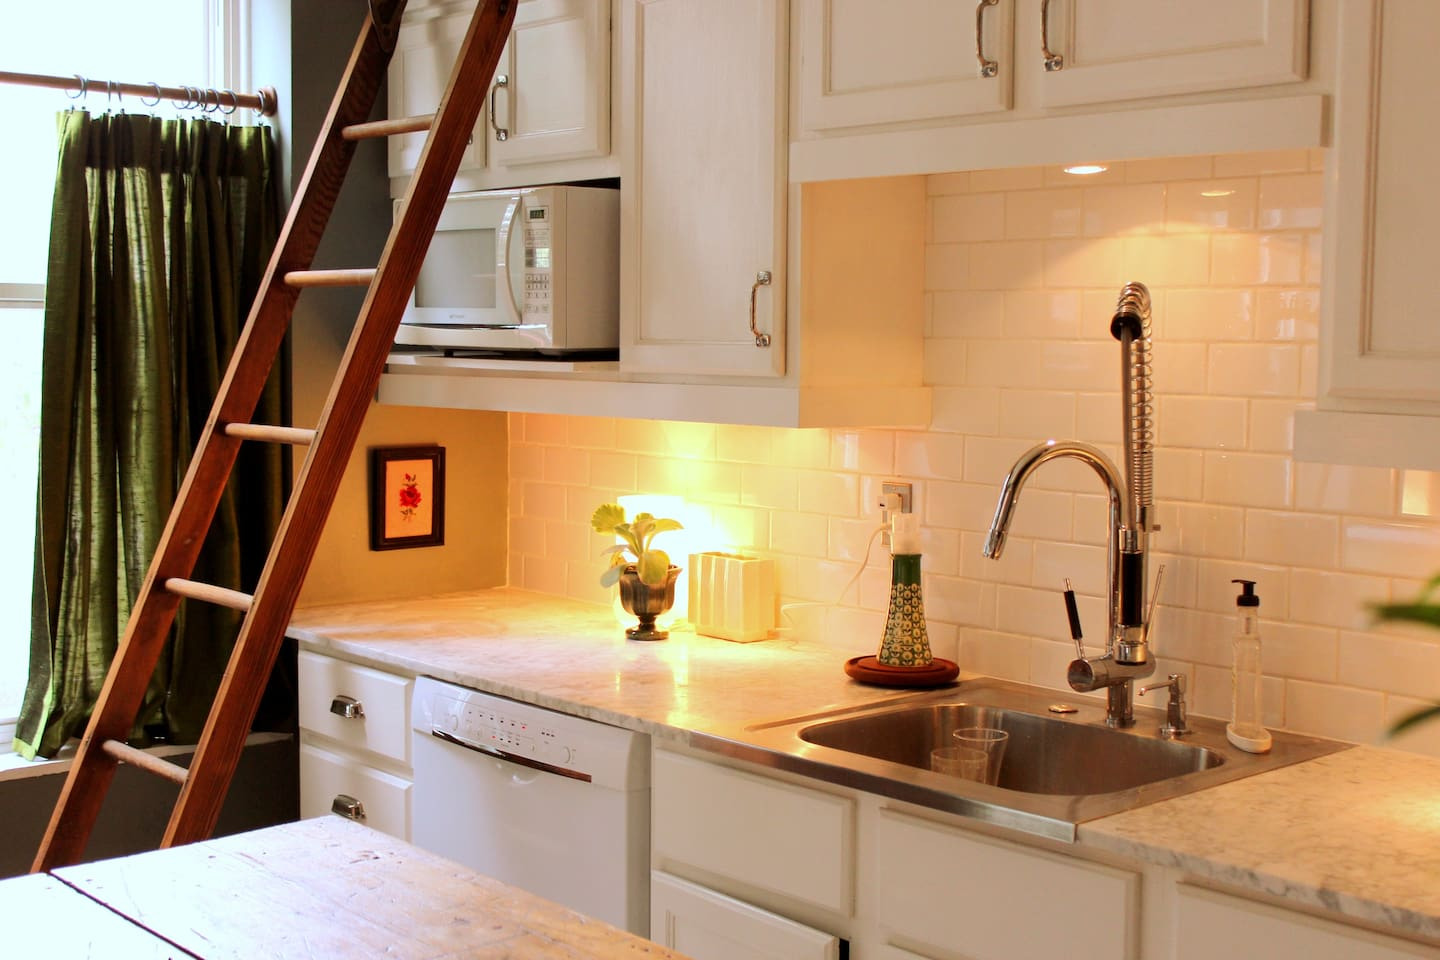 marble countertops salvaged from an old city building, dishwasher and large bowl stainless sink